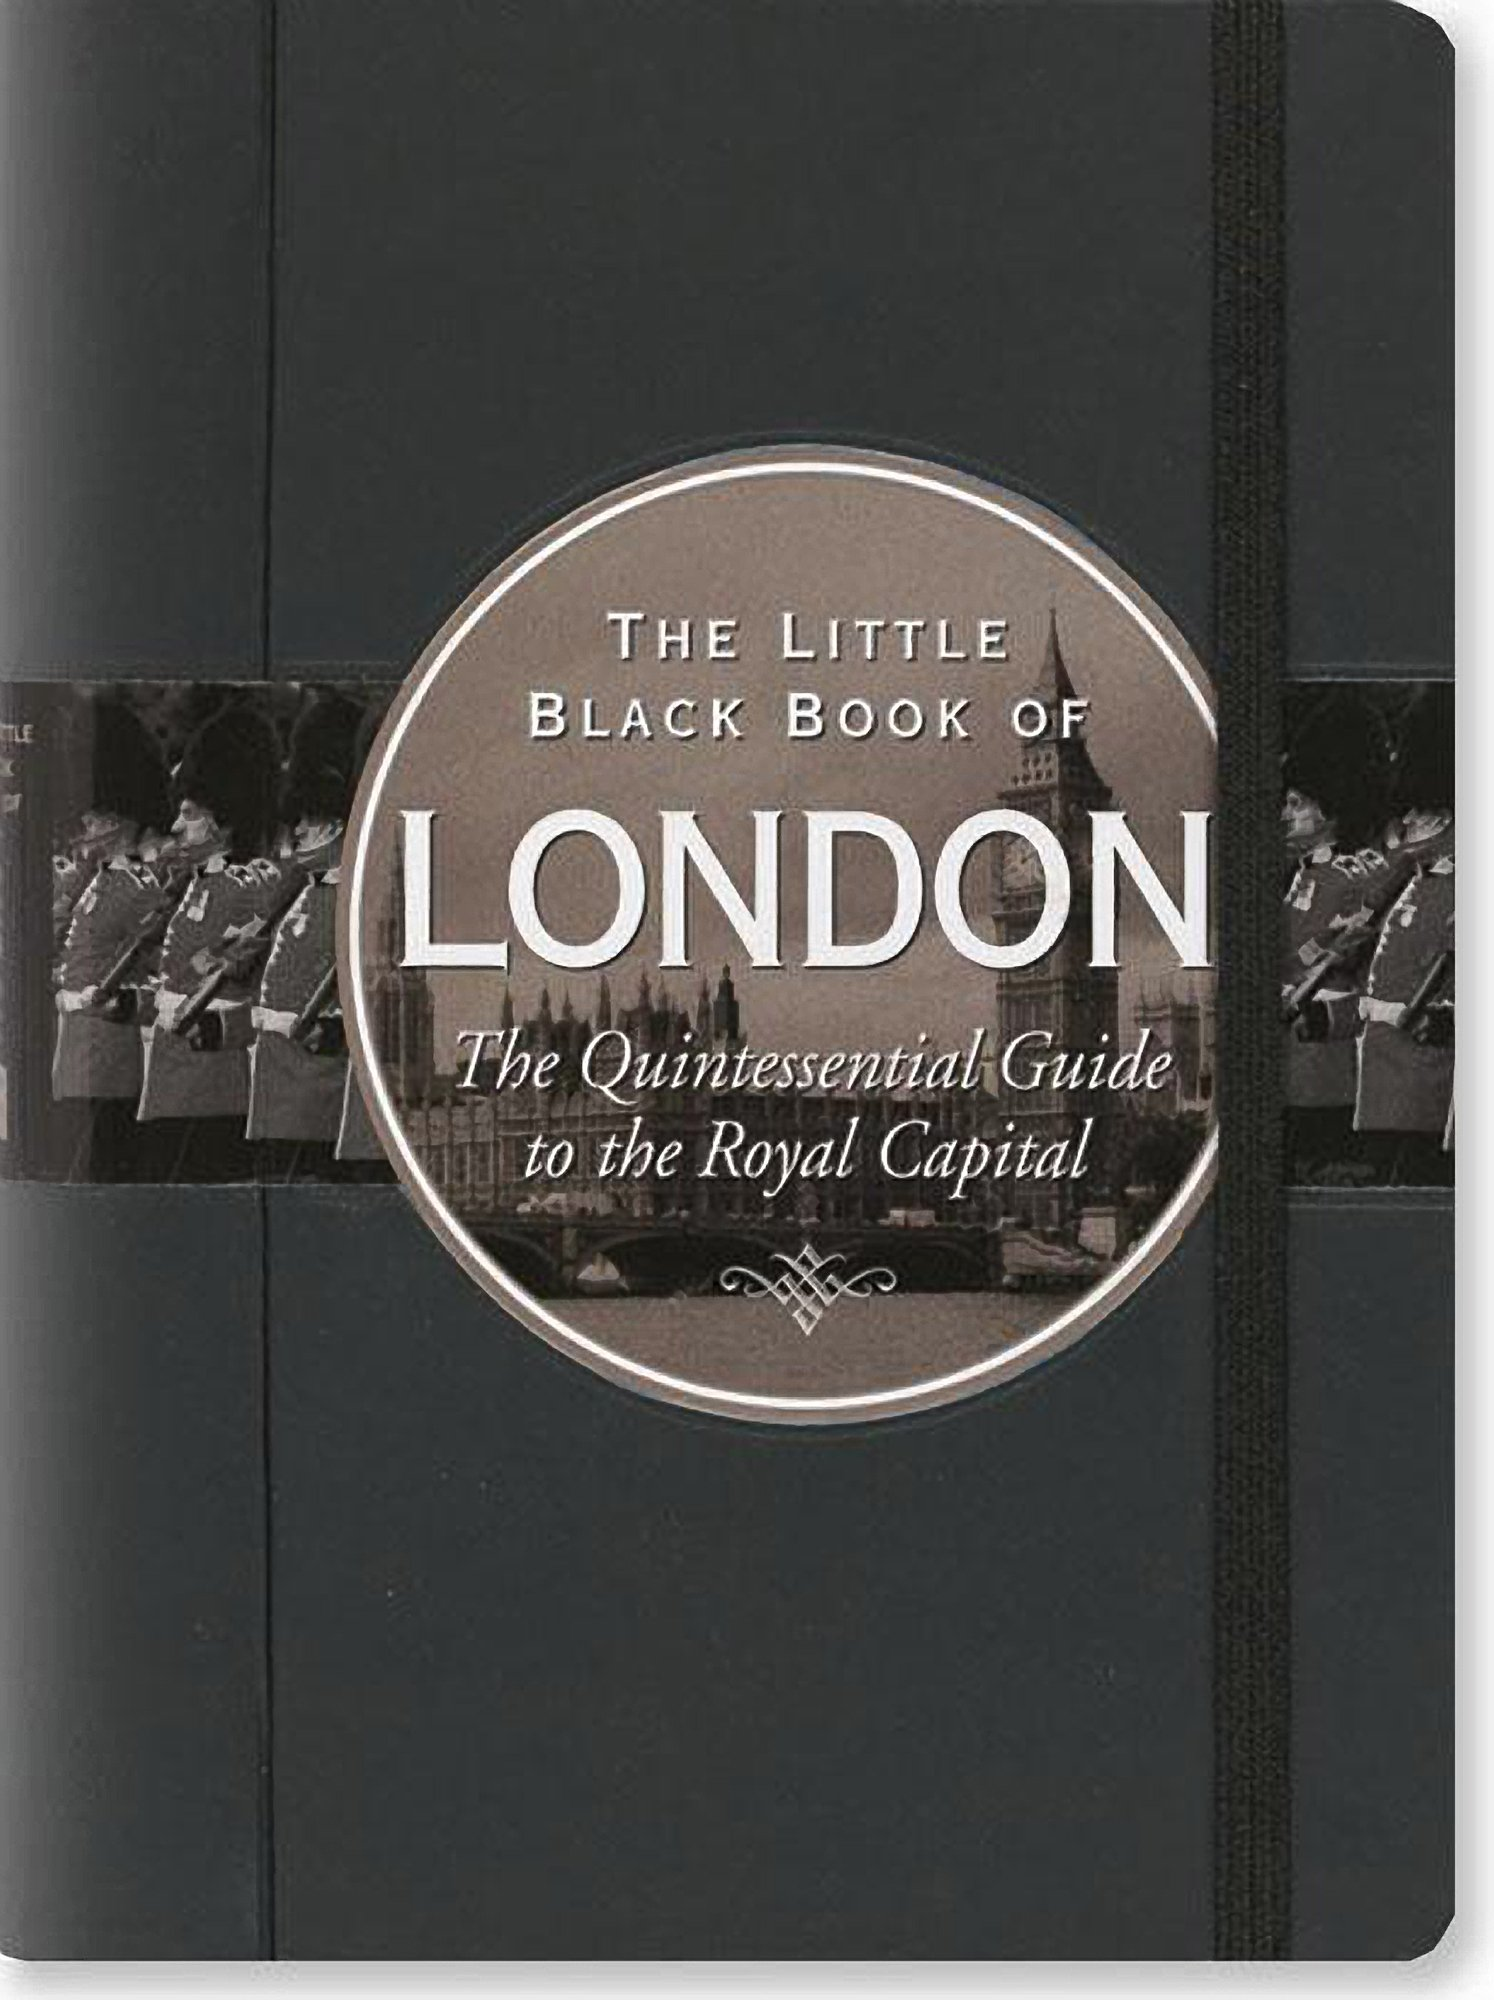 Little Black Book of London, 2016 Edition: The Quintessential Guide to the Royal Capital